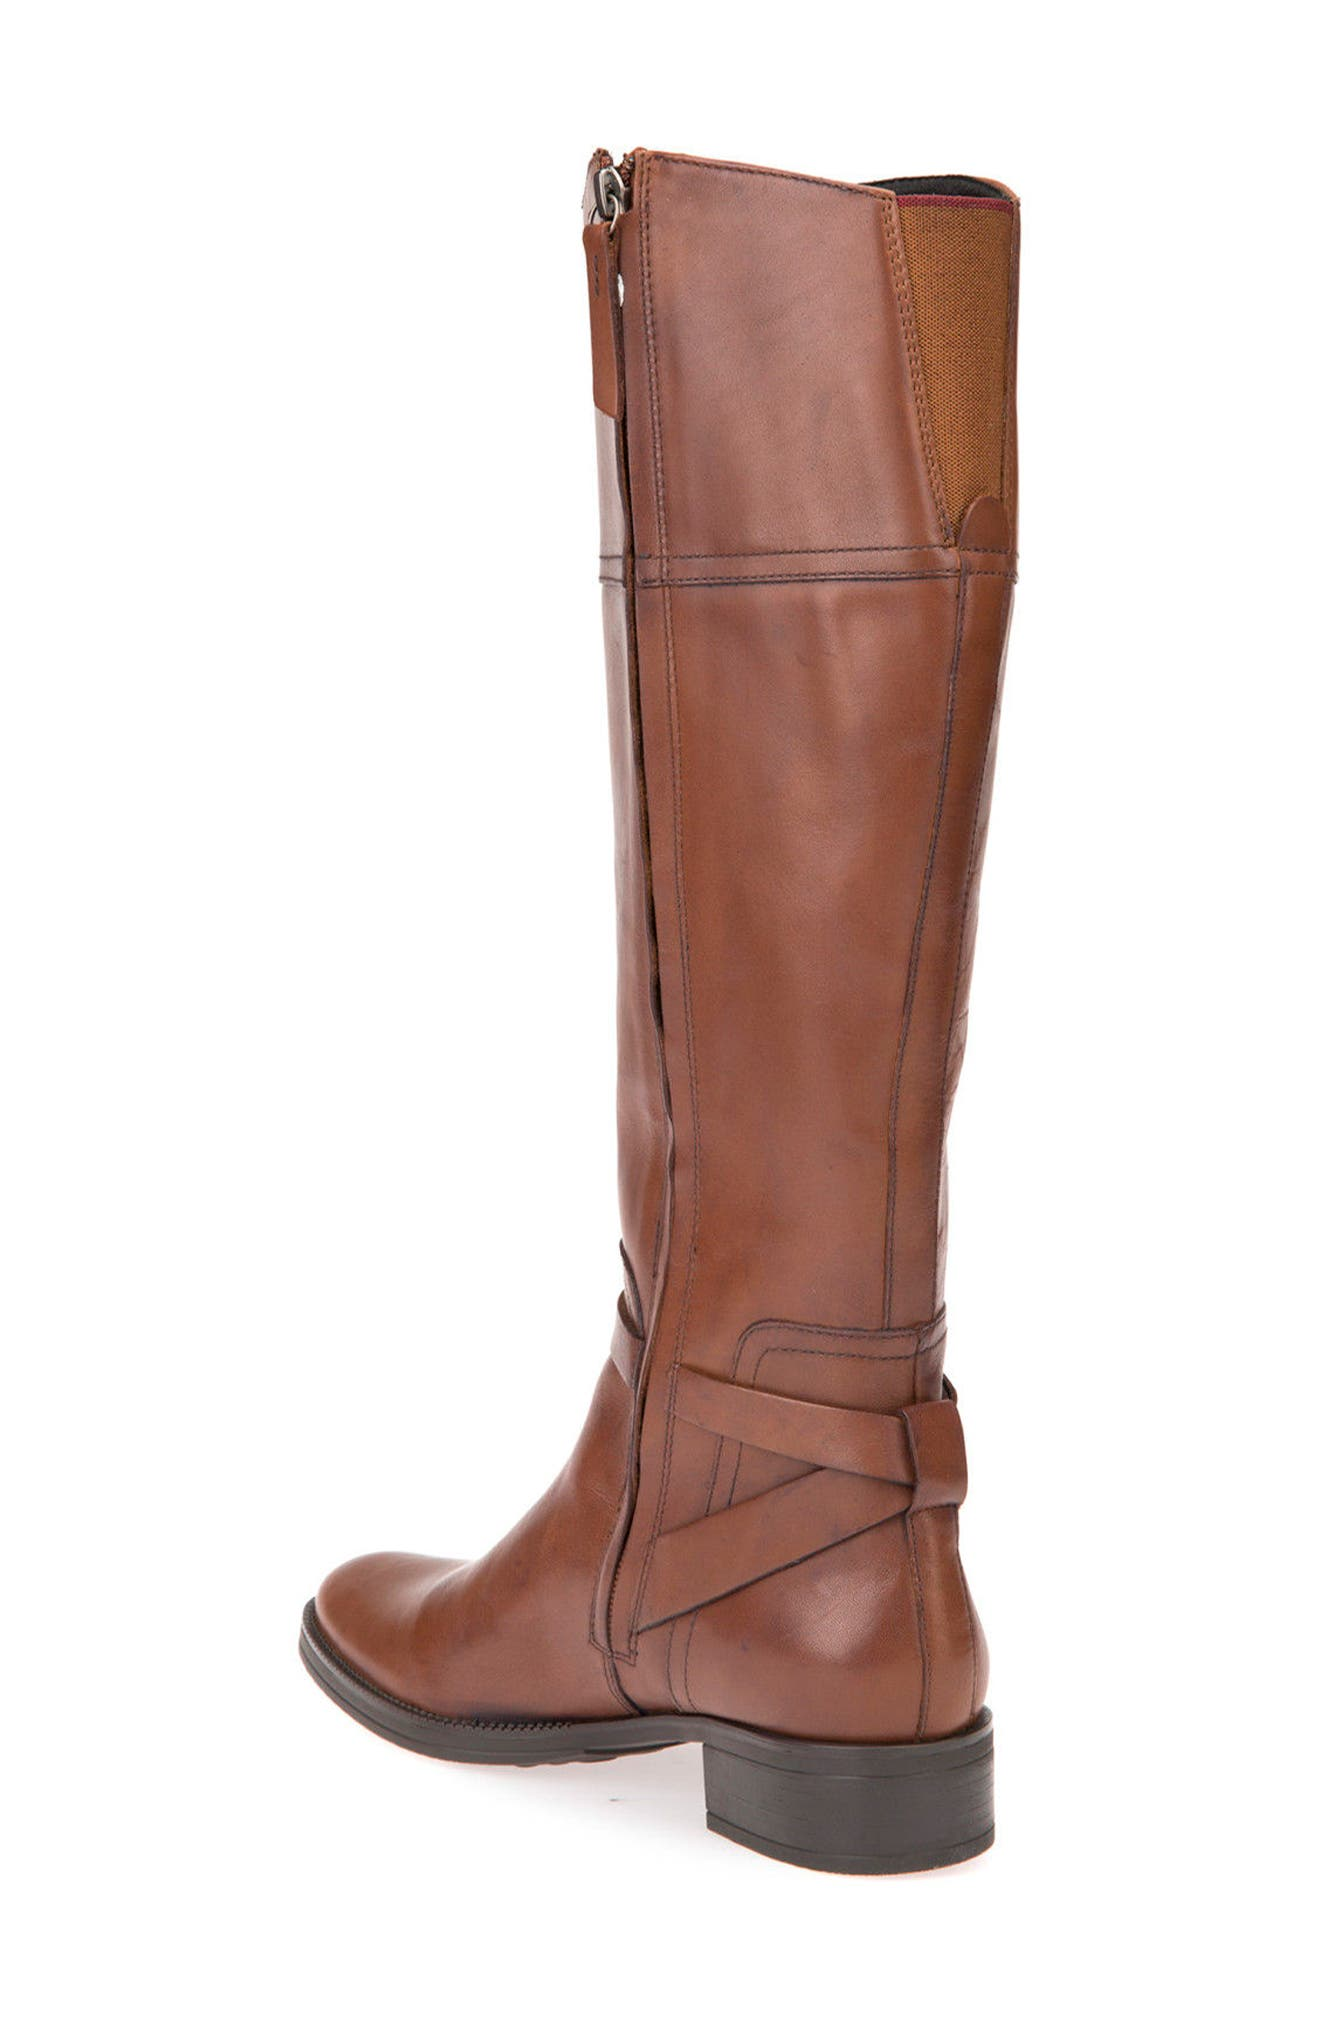 Mendin ABX Waterproof Riding Boot,                             Alternate thumbnail 2, color,                             Brown Leather